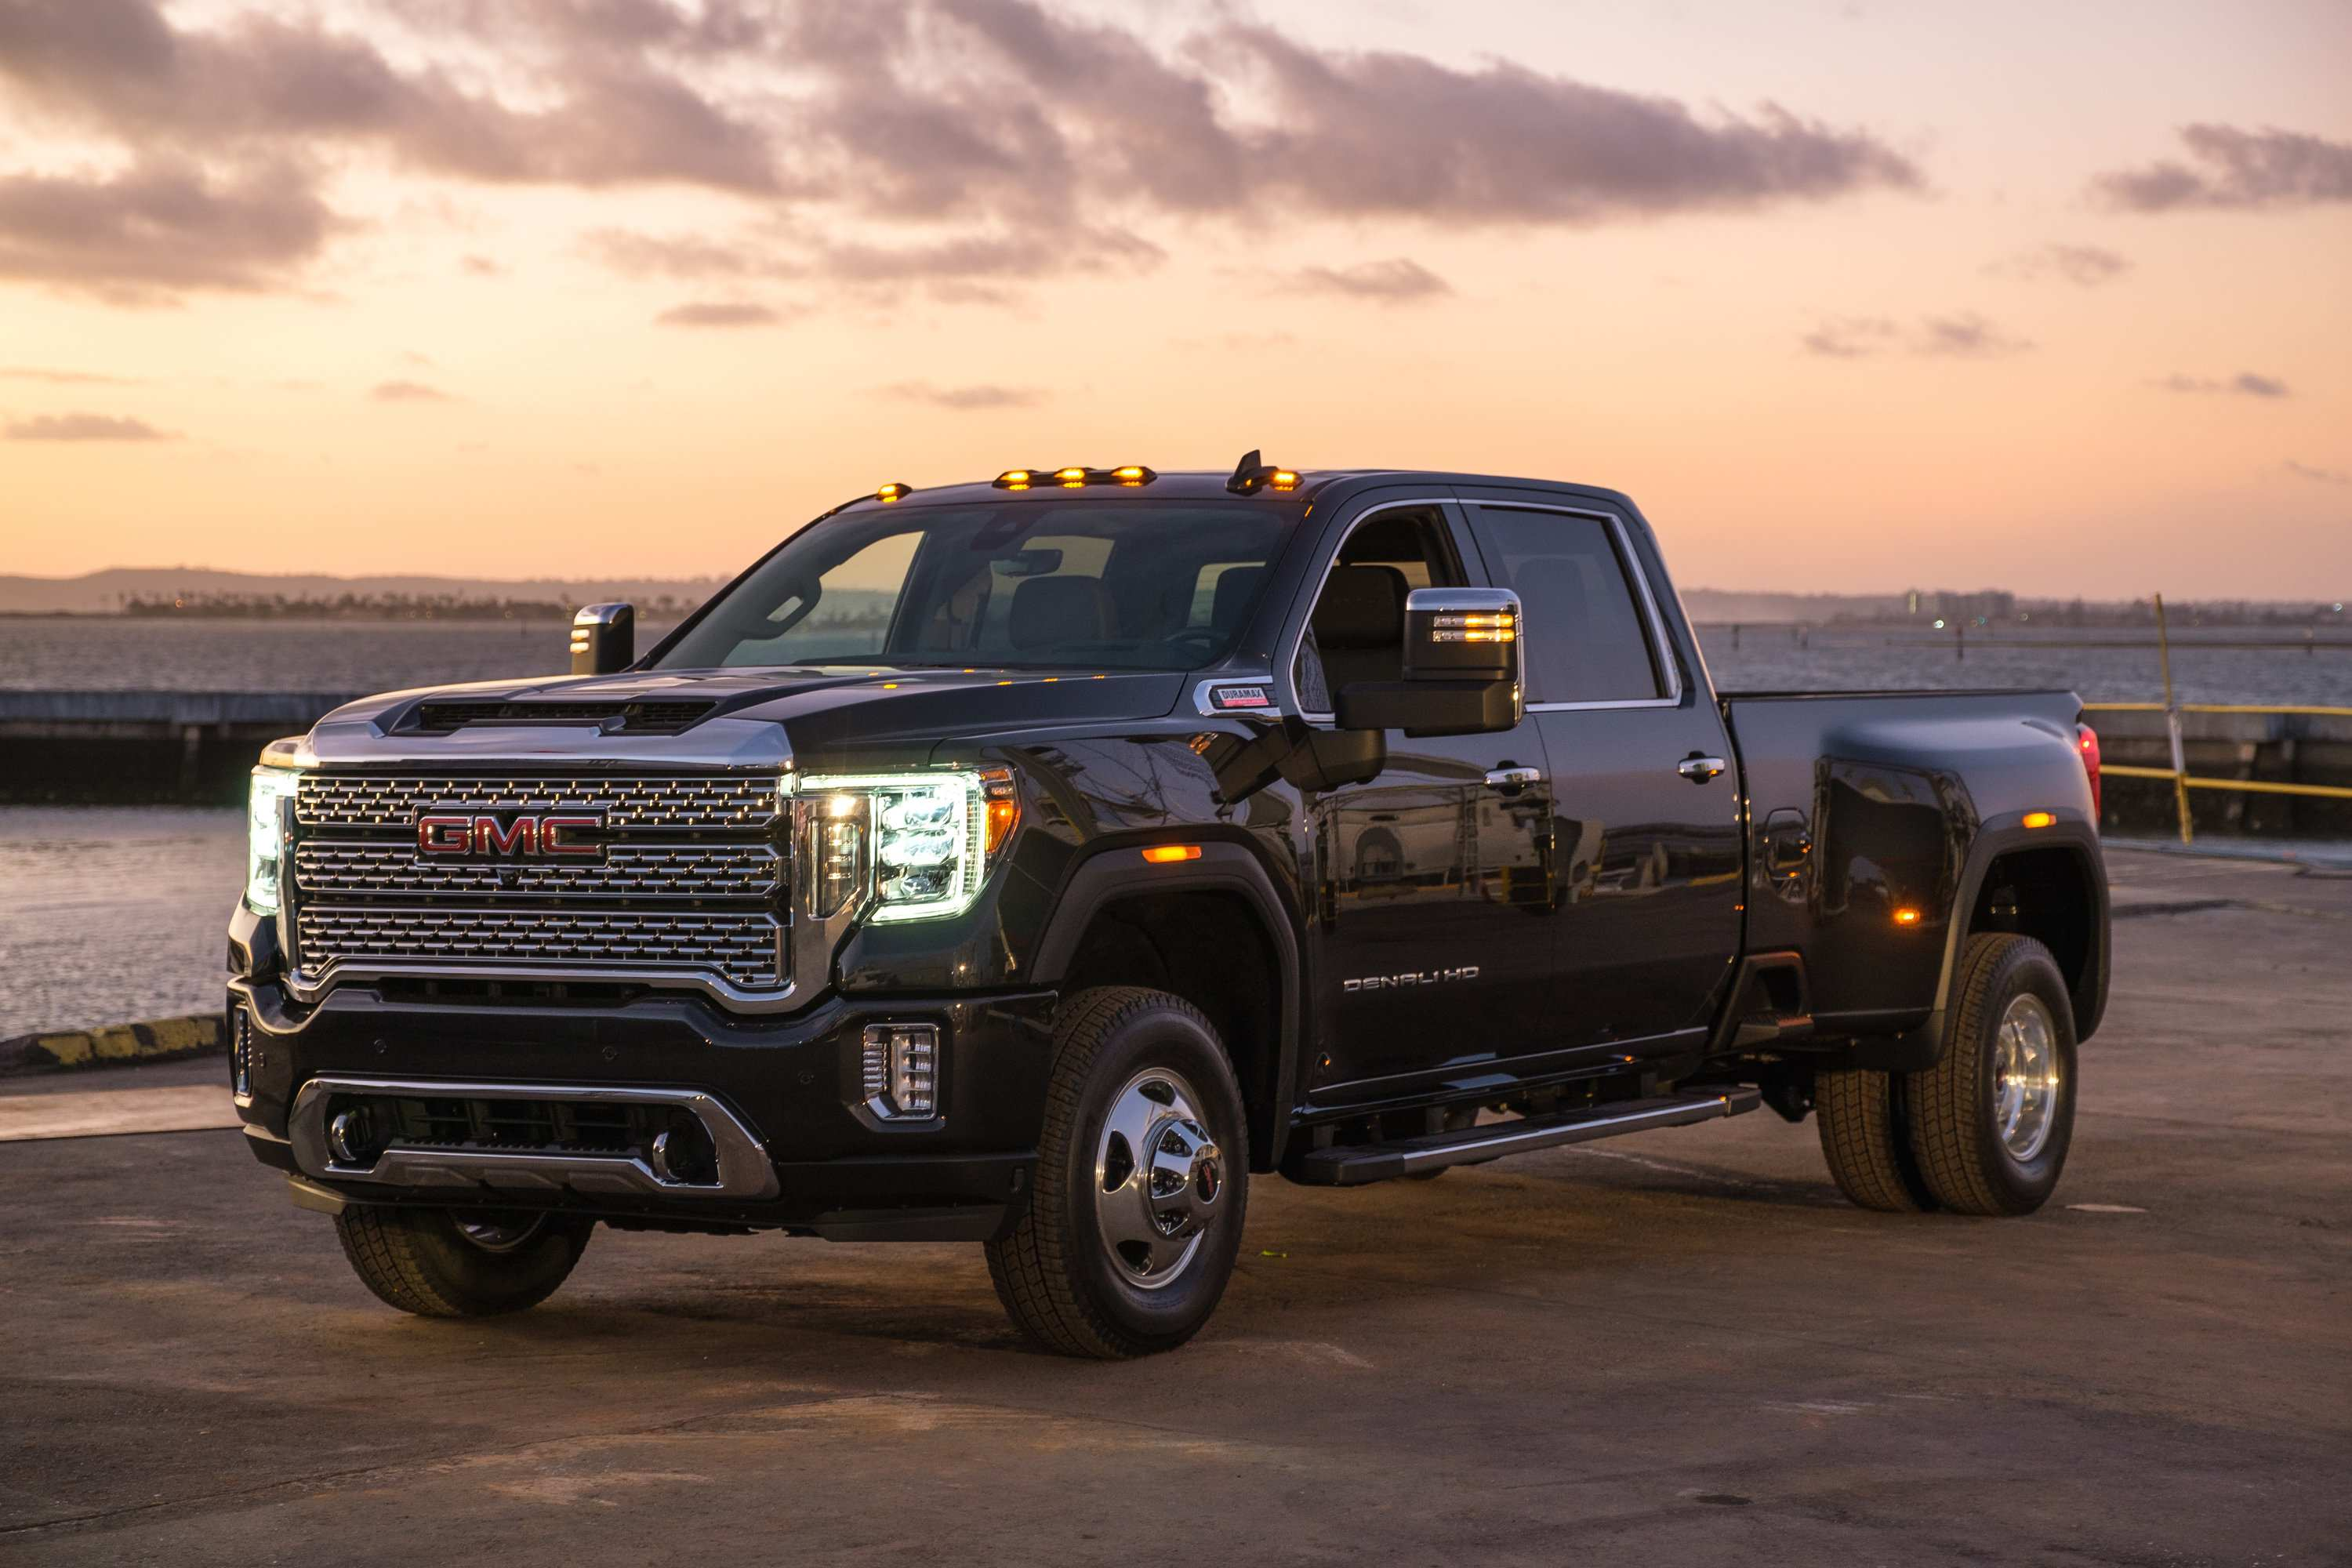 81 Great 2020 Gmc Pickup Truck Exterior for 2020 Gmc Pickup Truck